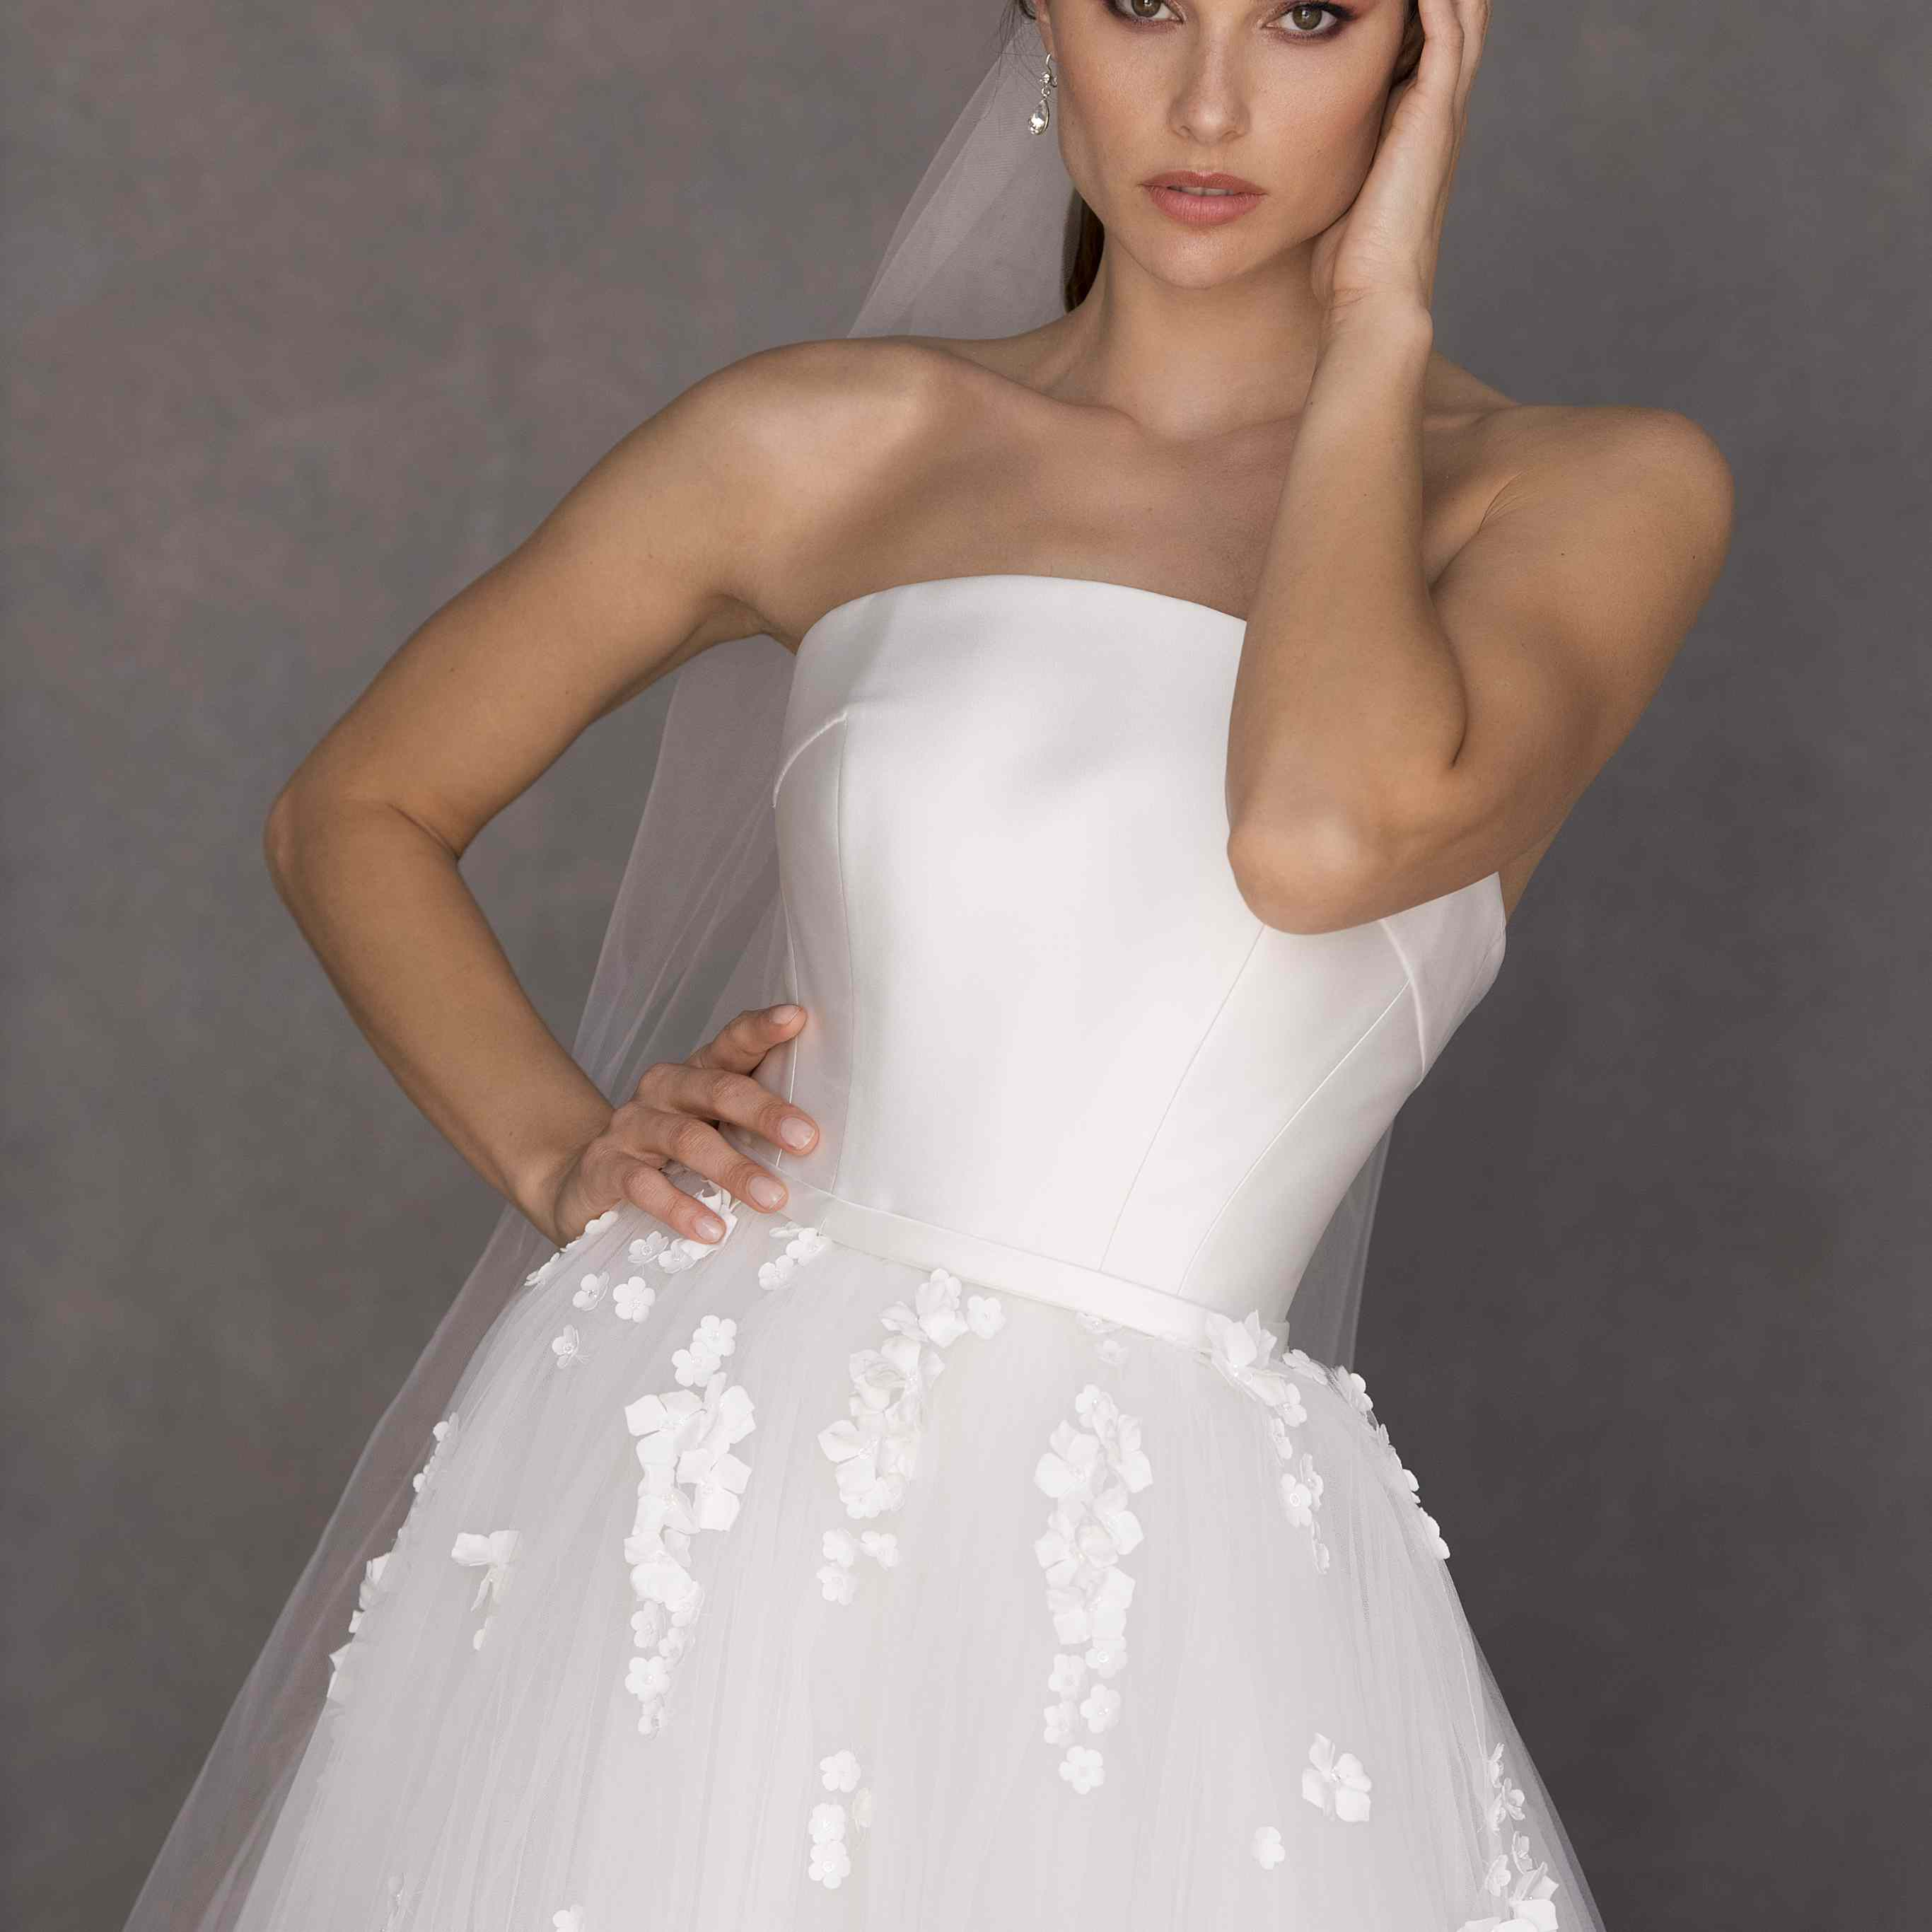 Model in strapless ballgown with a silk bodice and tulle skirt with floral appliques with a matching headpiece